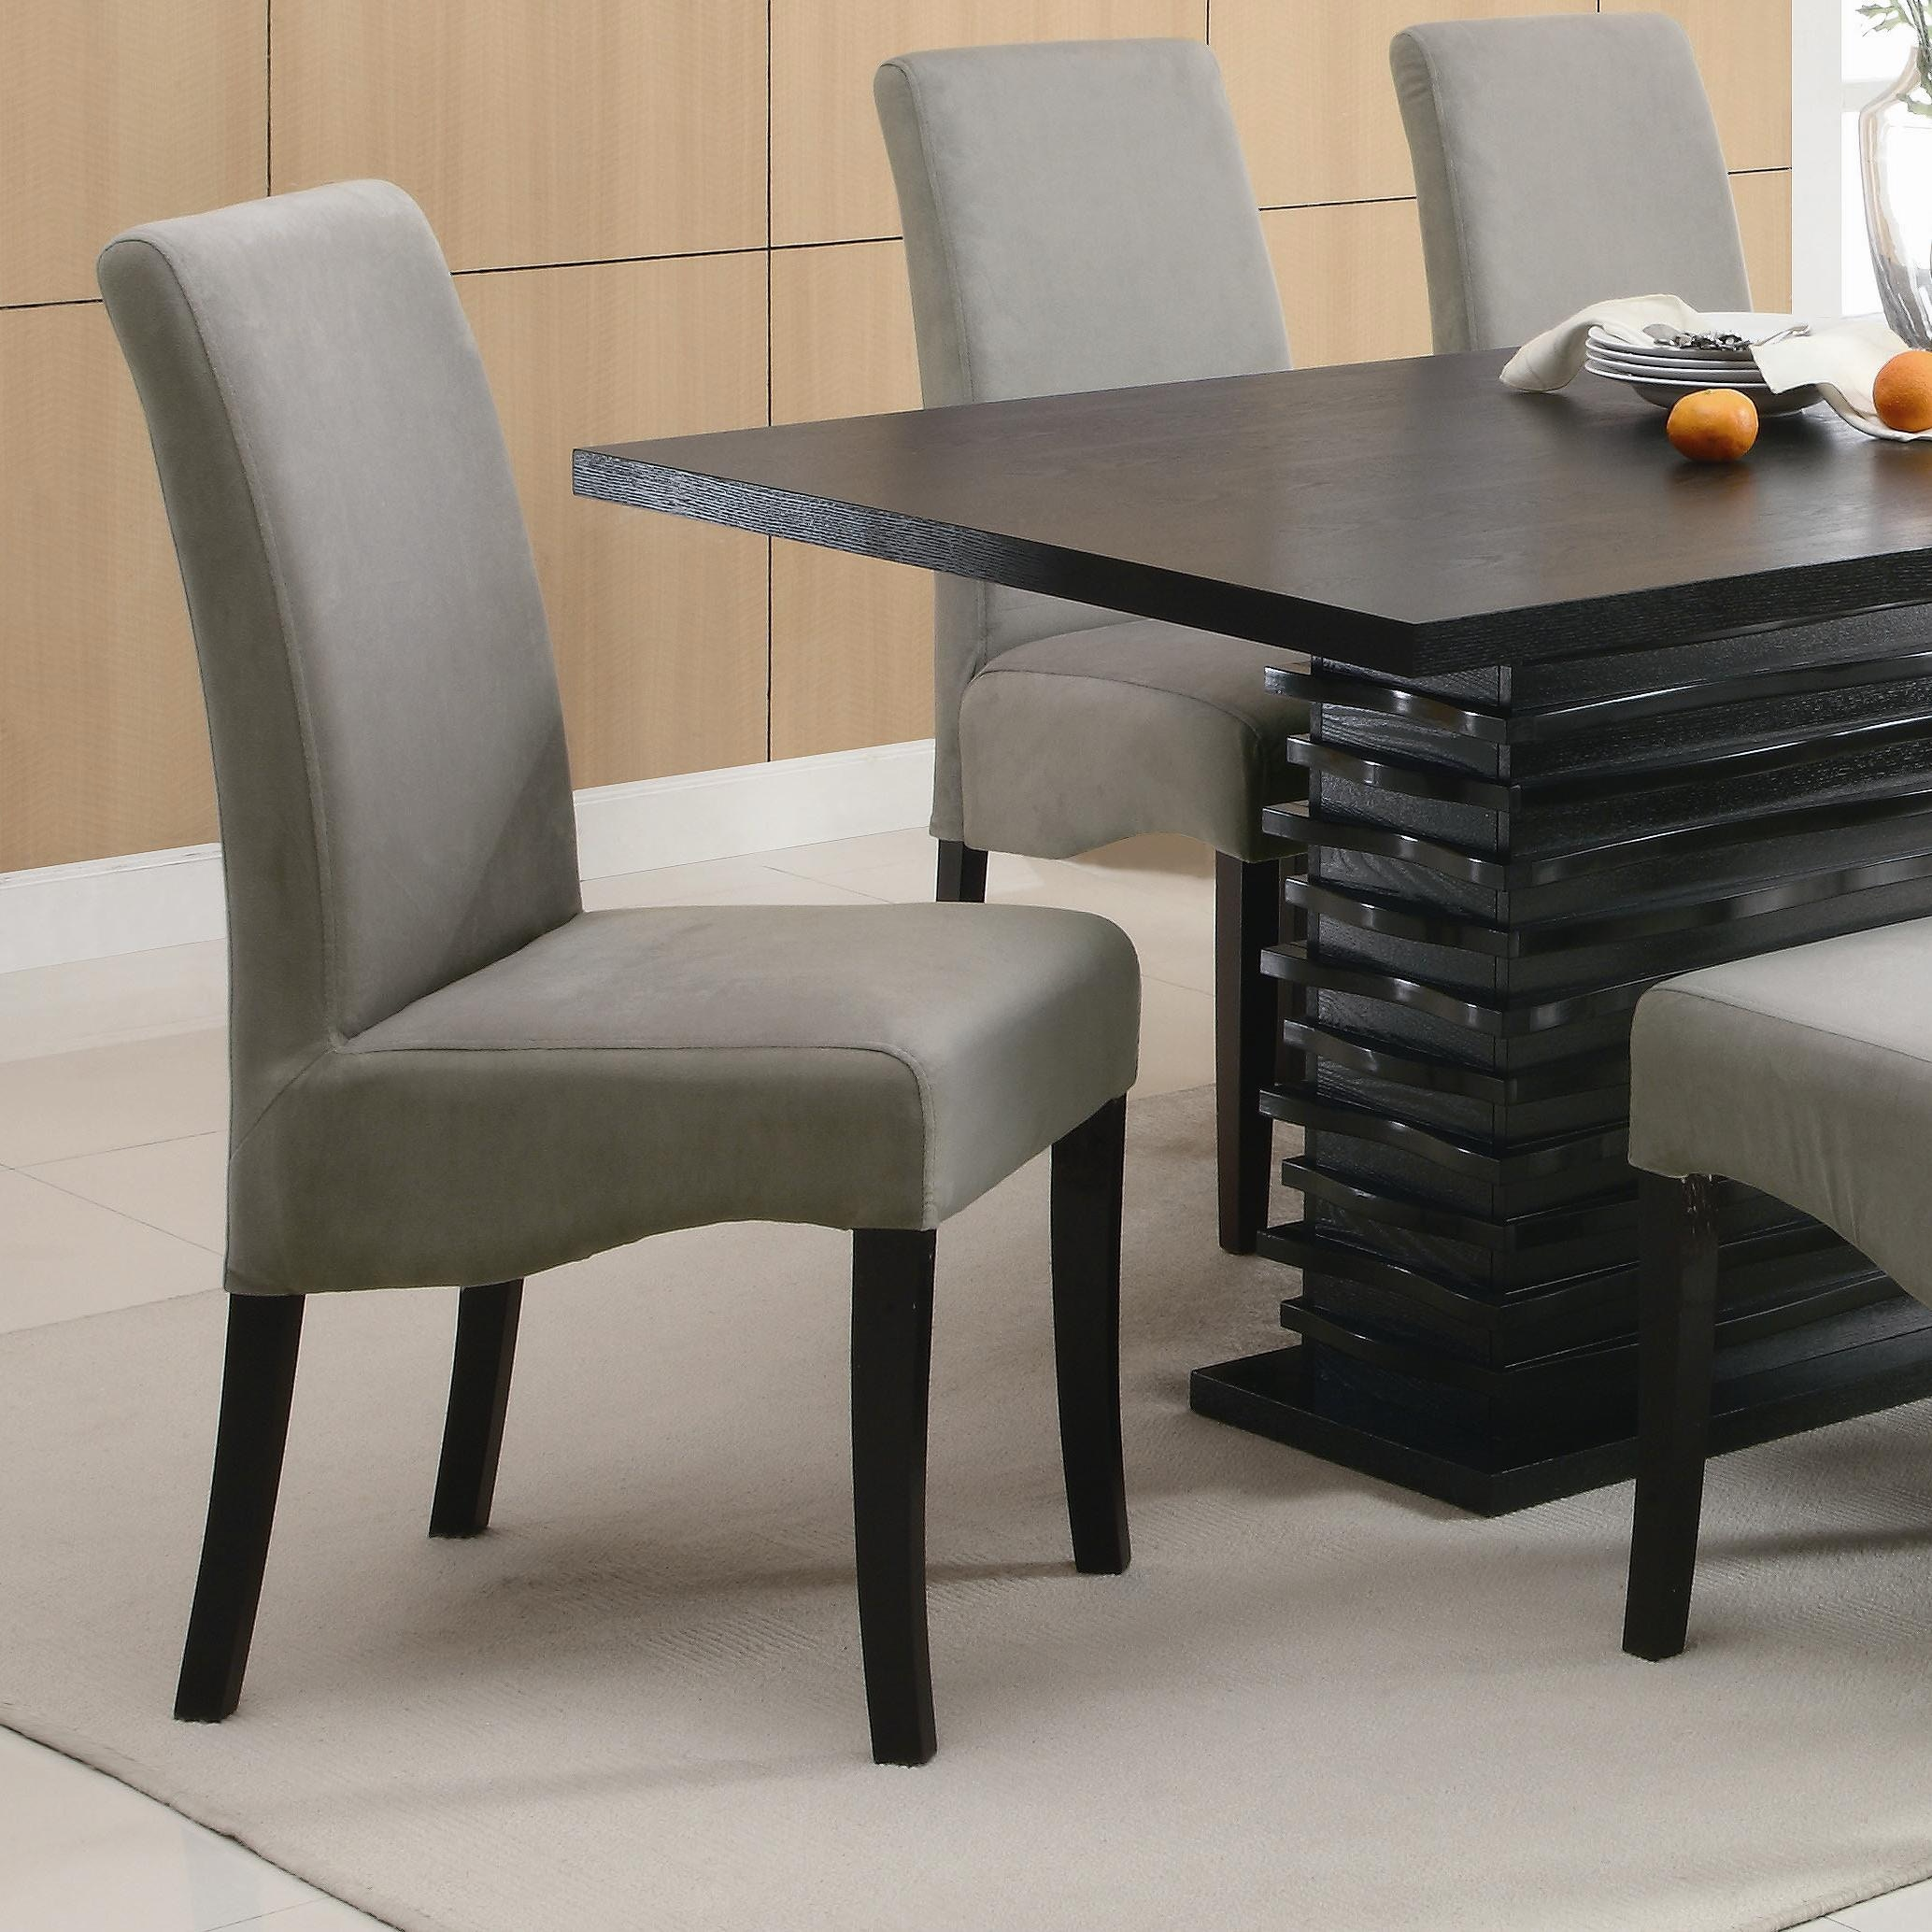 Coaster Side Chair 102062 Coaster Dining Room